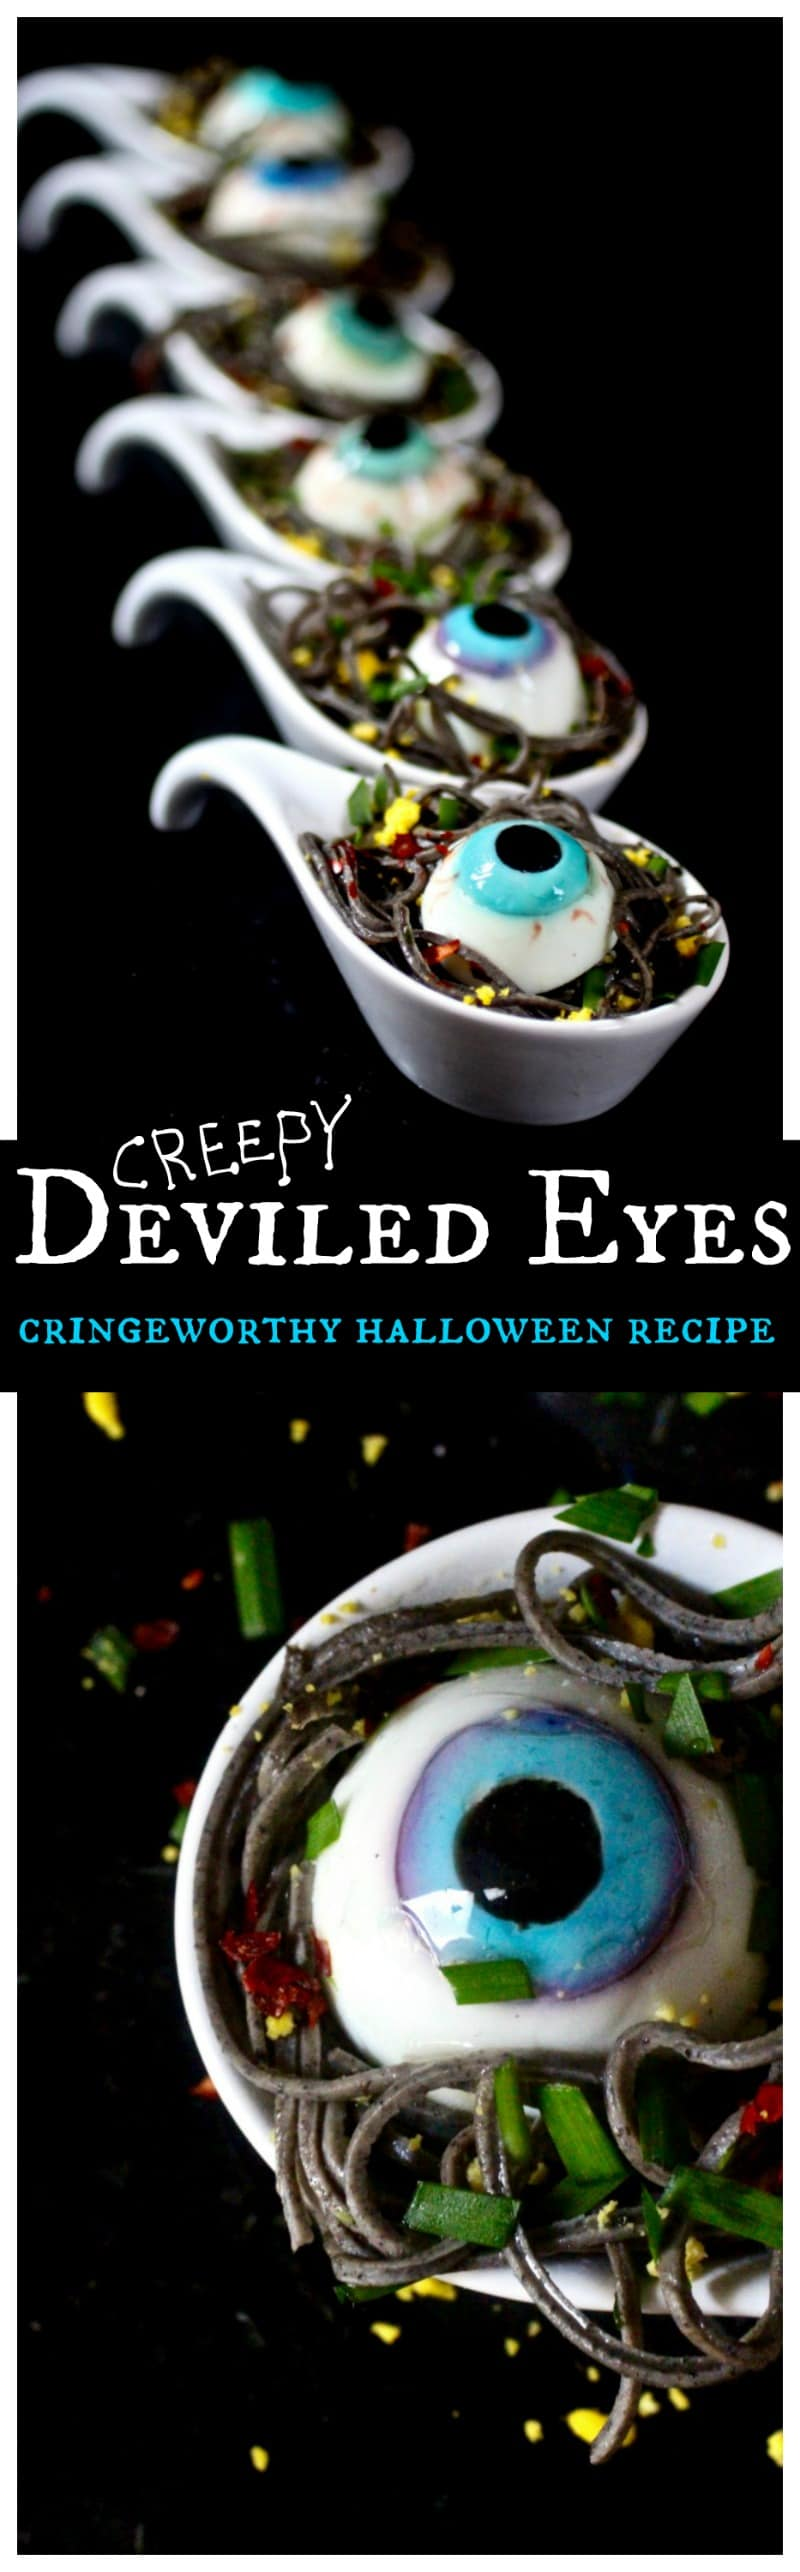 deviled-eyes-recipe